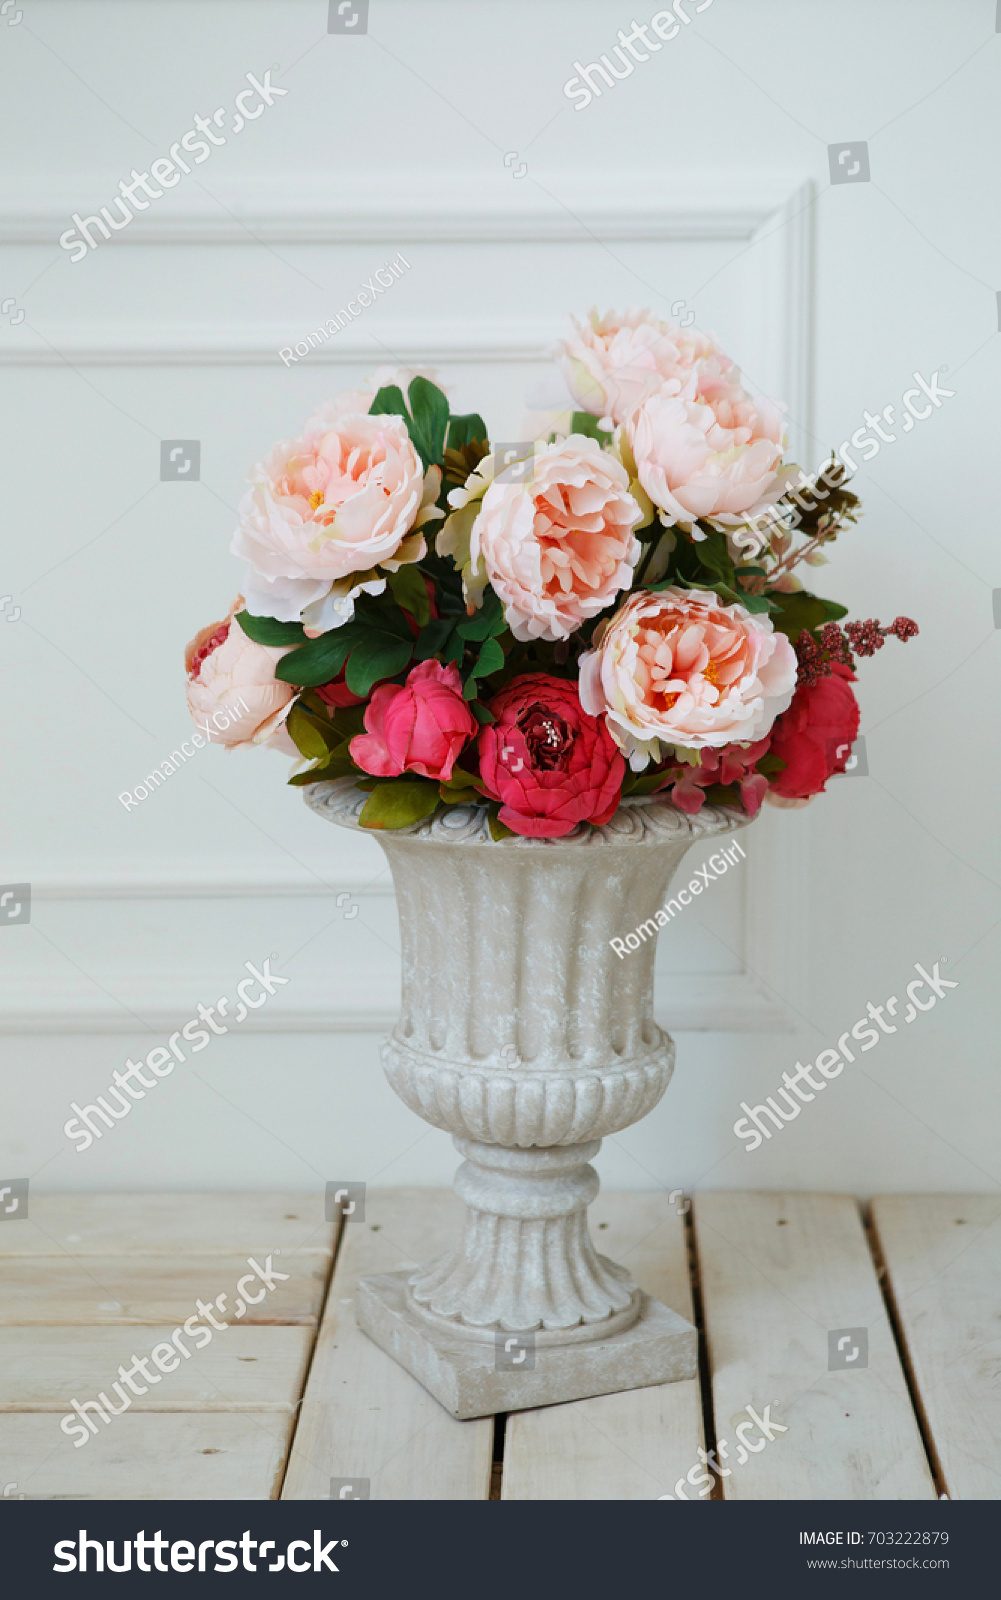 Beautiful artificial fake flowers vase on stock photo 703222879 beautiful artificial fake flowers in vase on white background reviewsmspy